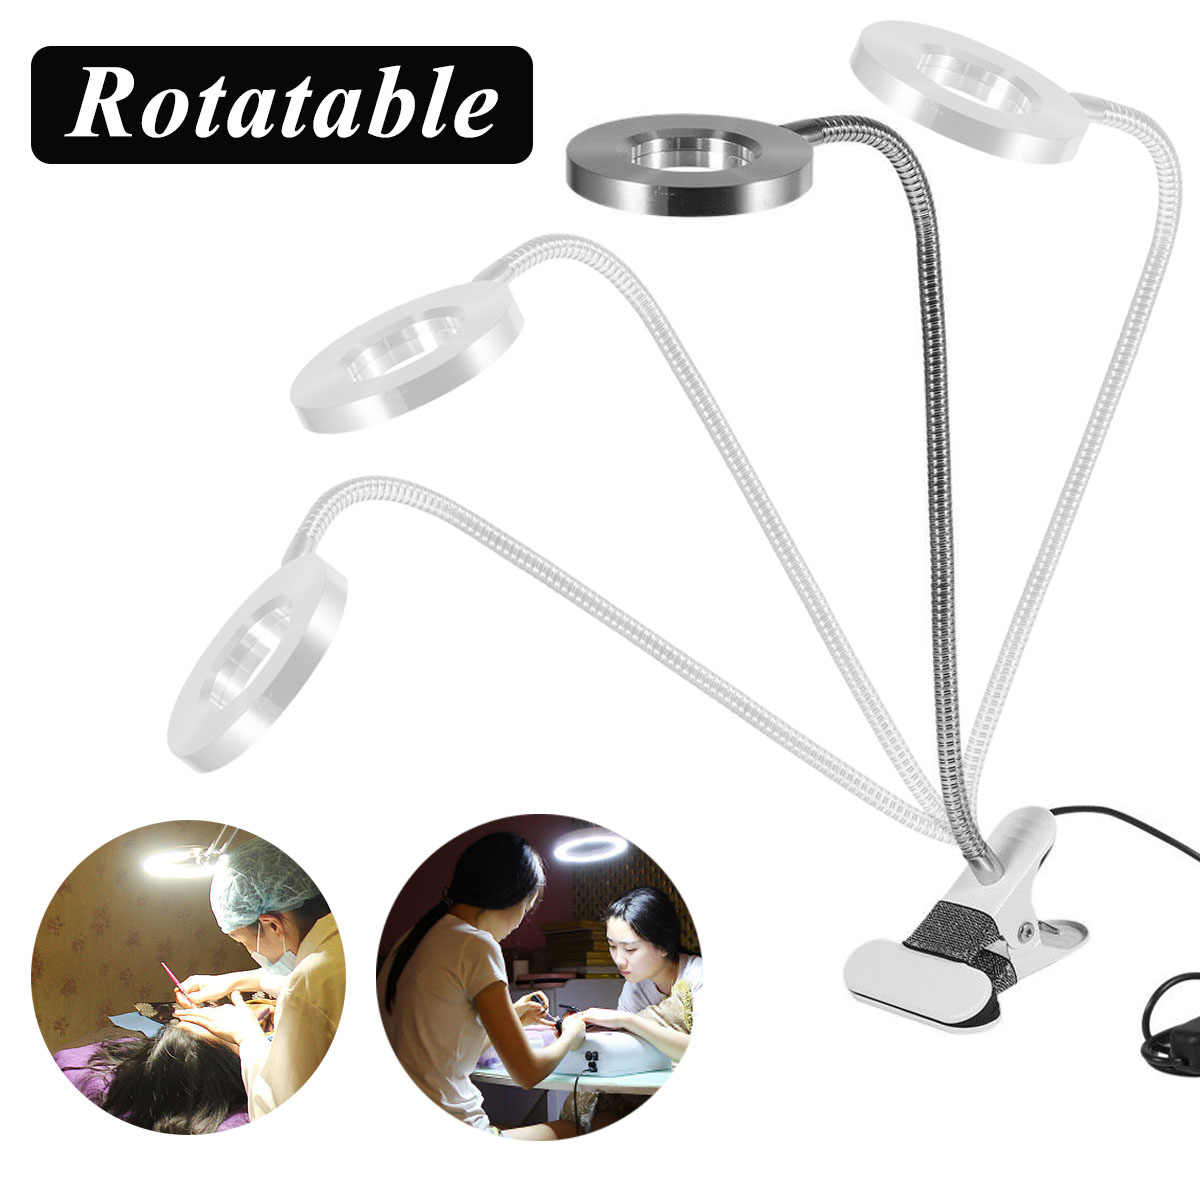 Led Clip Tafellamp Dimmen Bureaulamp Permanente Wenkbrauw Manicure Light Usb Voor Night Reading Nail Art Beauty Make-Up